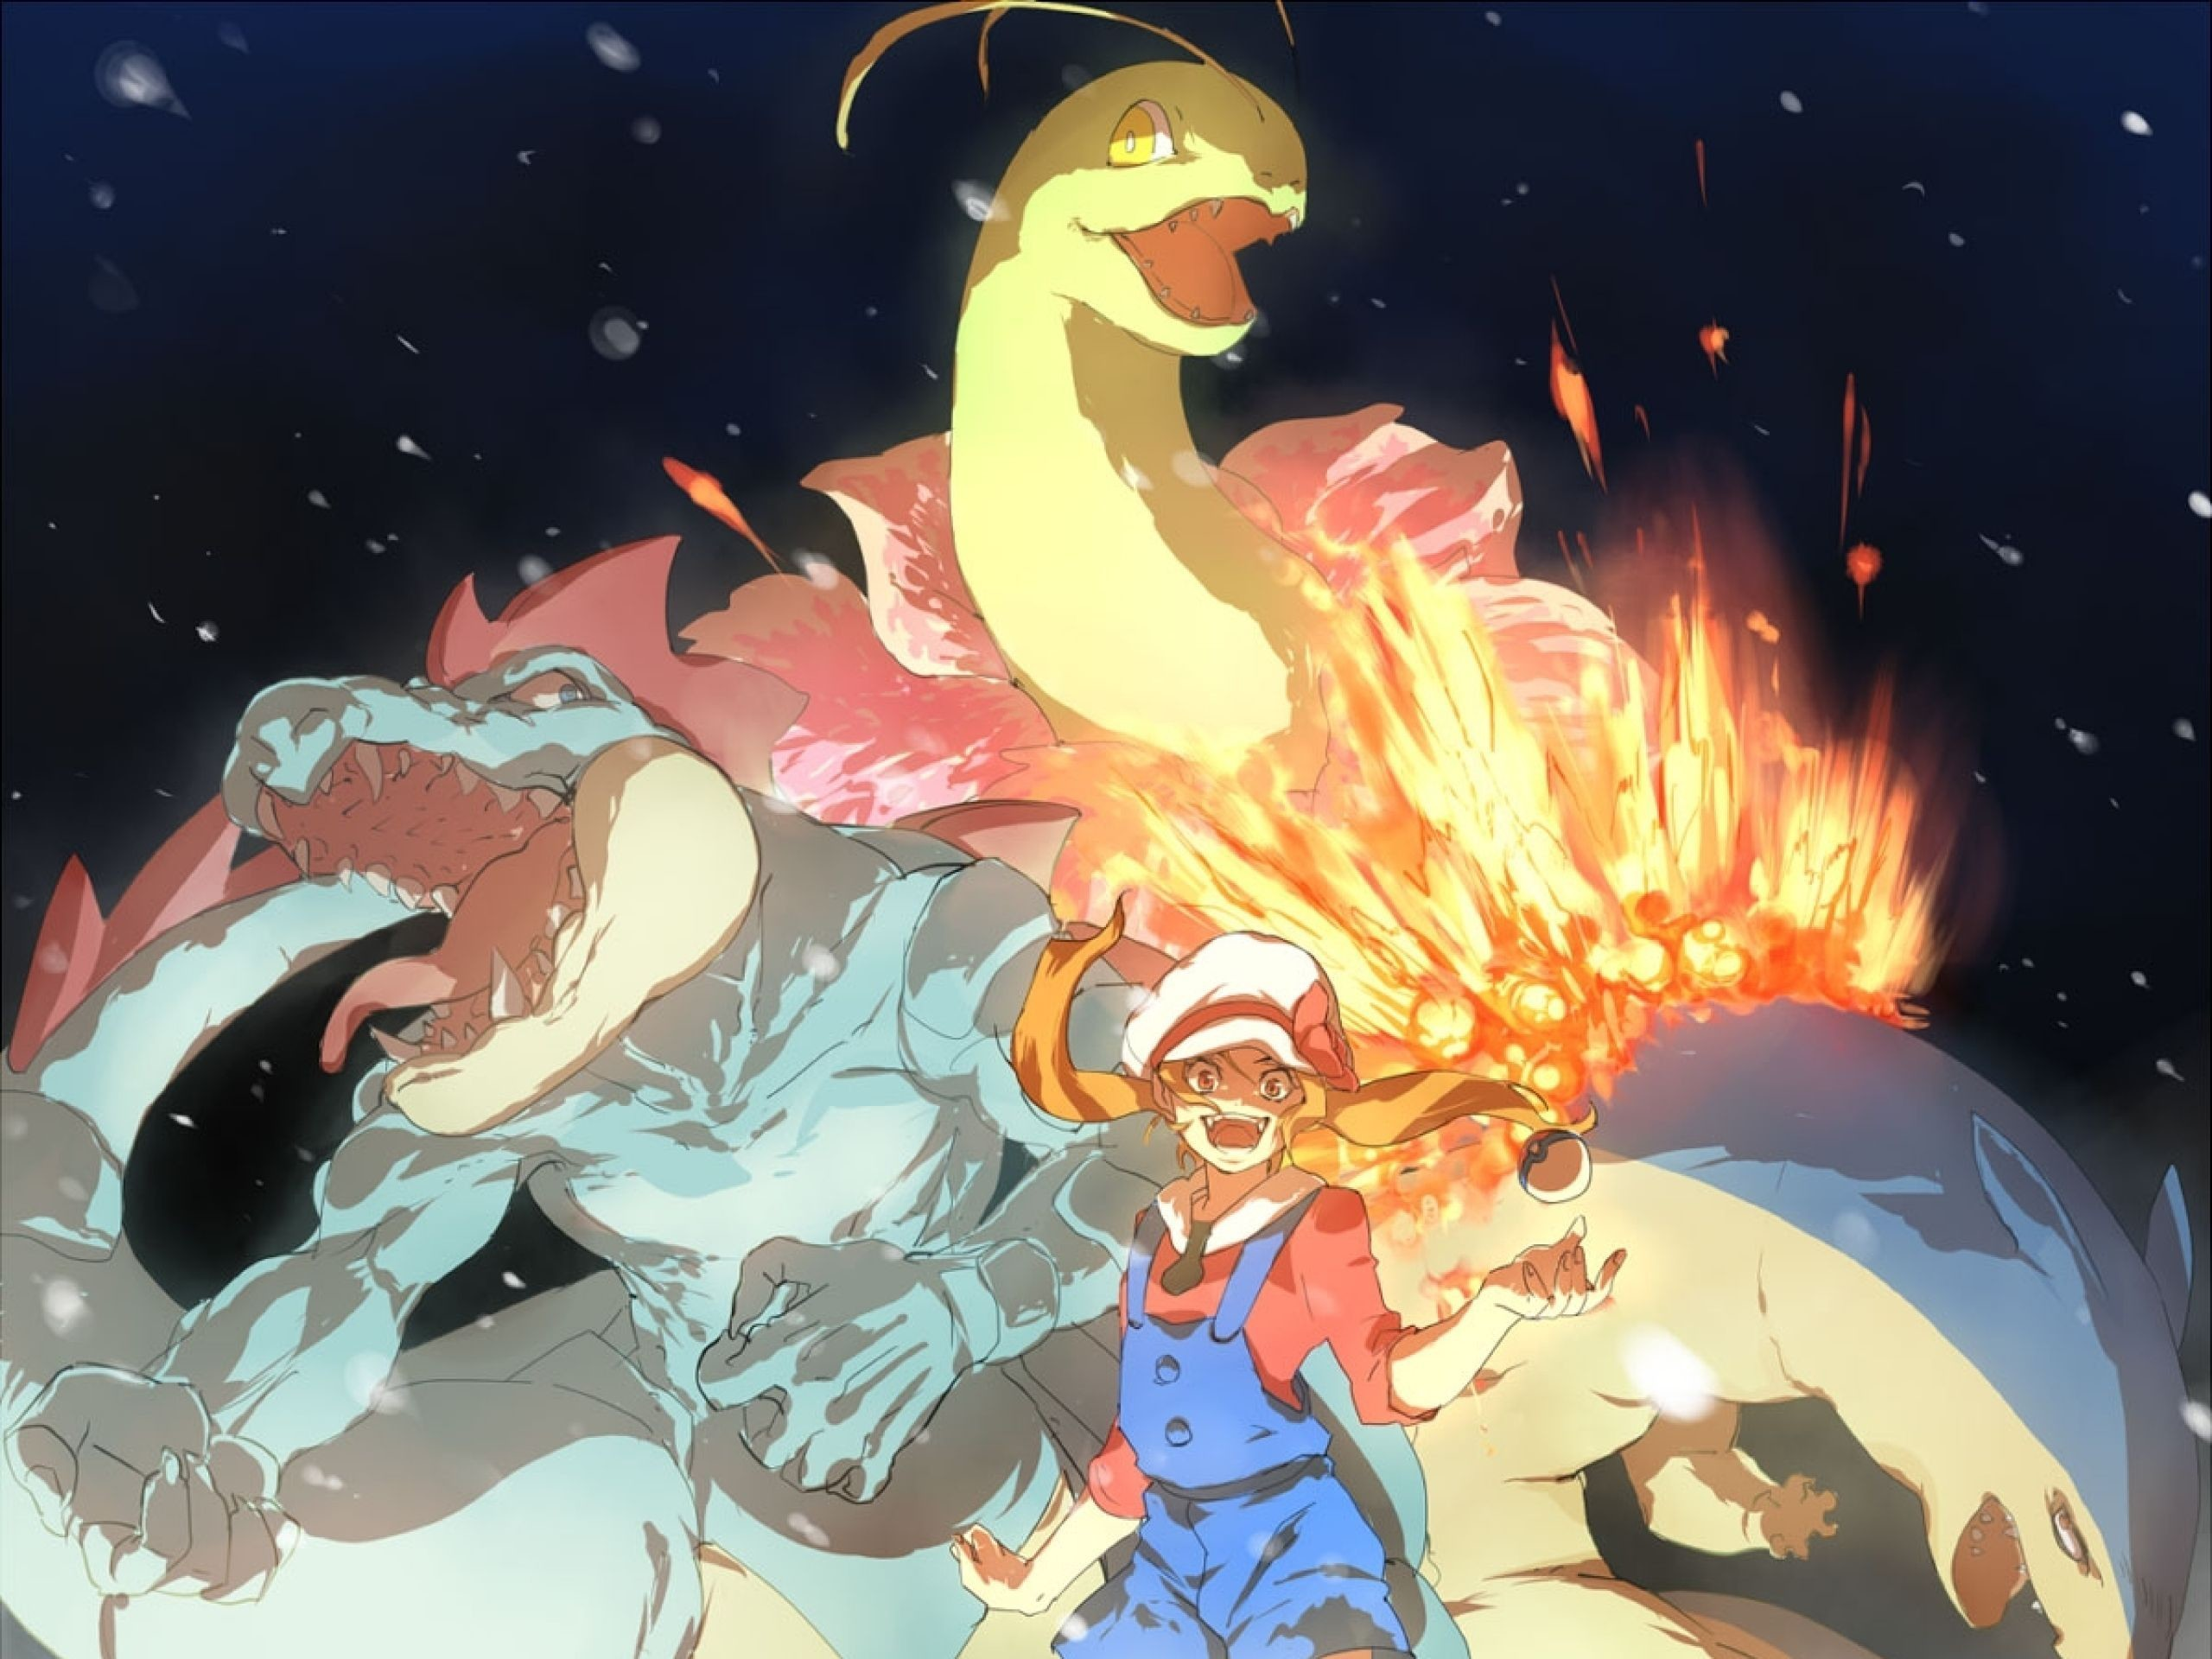 Res: 2560x1920, Lyra with Feraligatr, Meganium, and Typhlosion